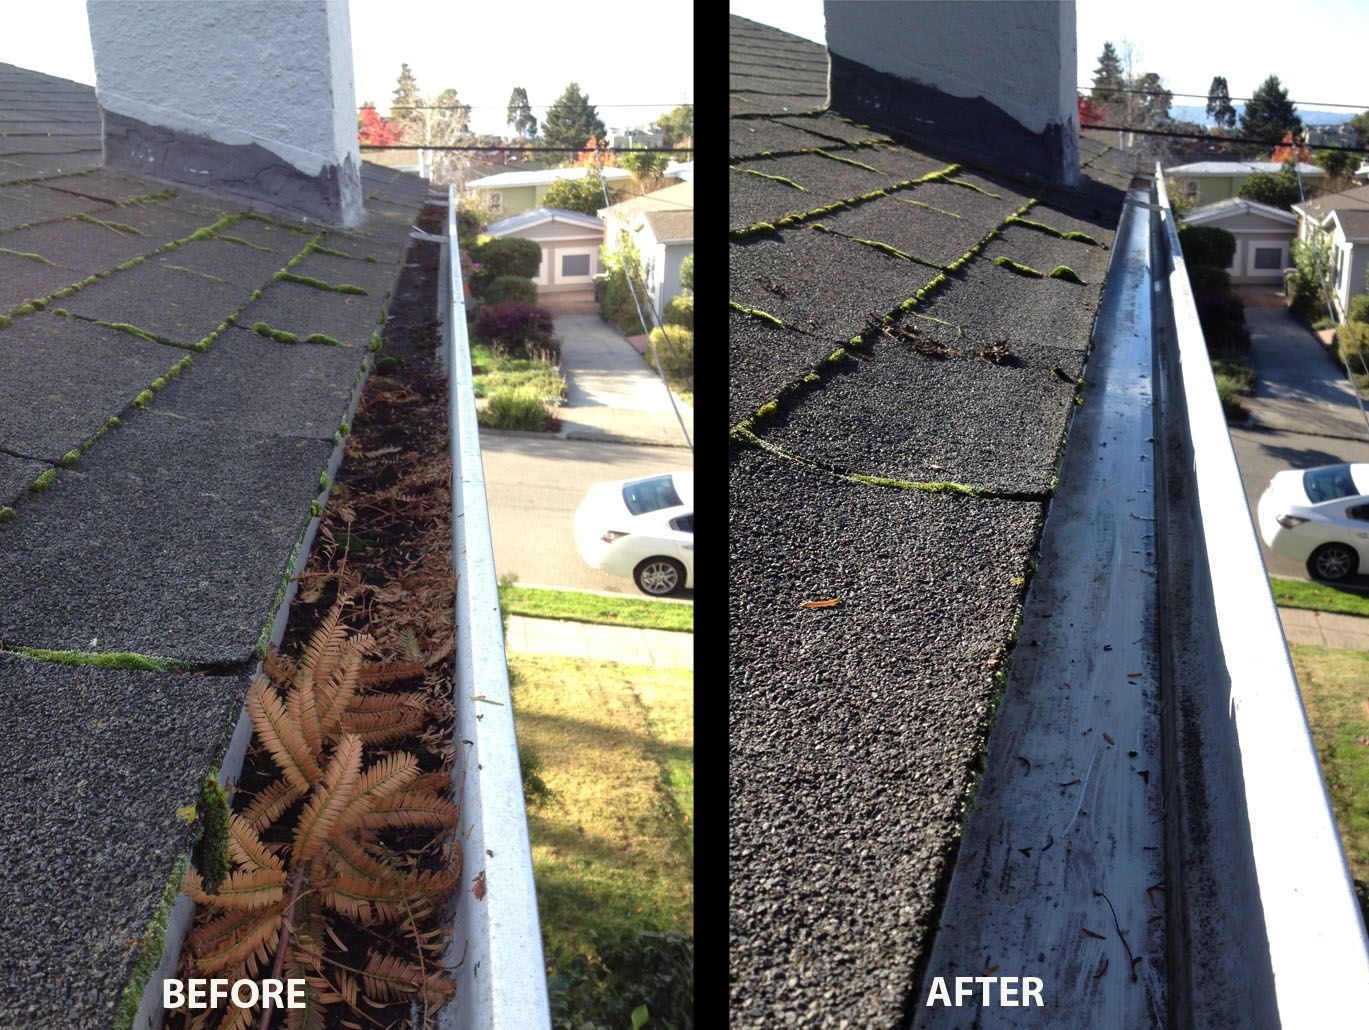 Rain Gutter Cleaning And Repair Services In Alameda By